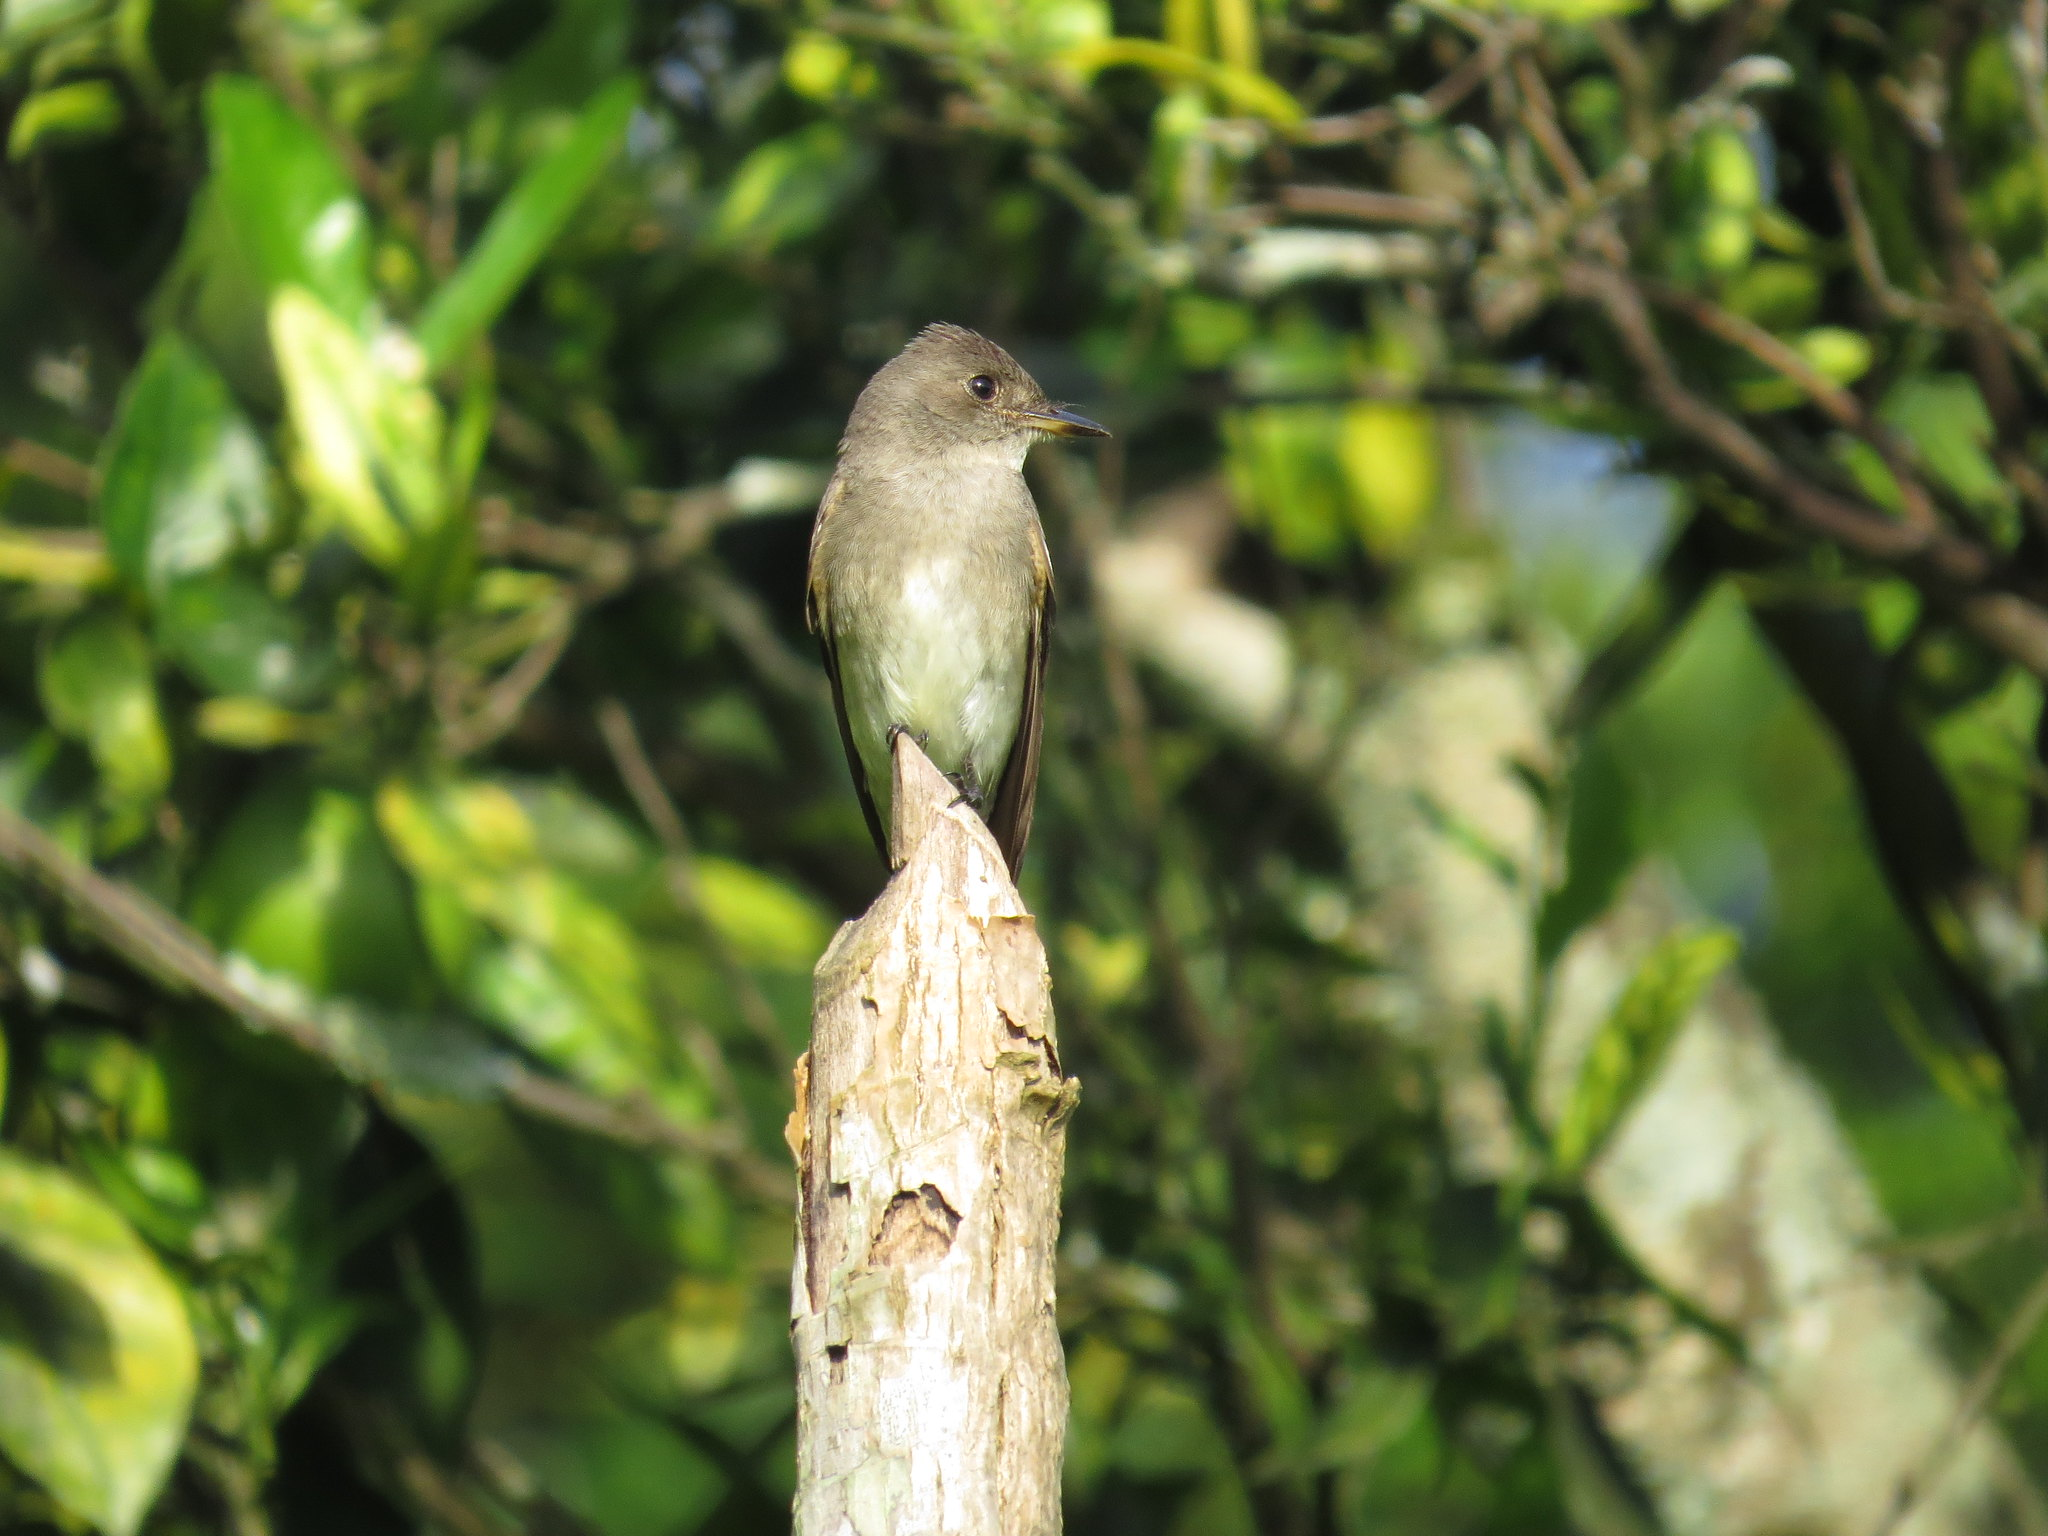 Western Wood-Pewee by Seth Inman - La Paz Group